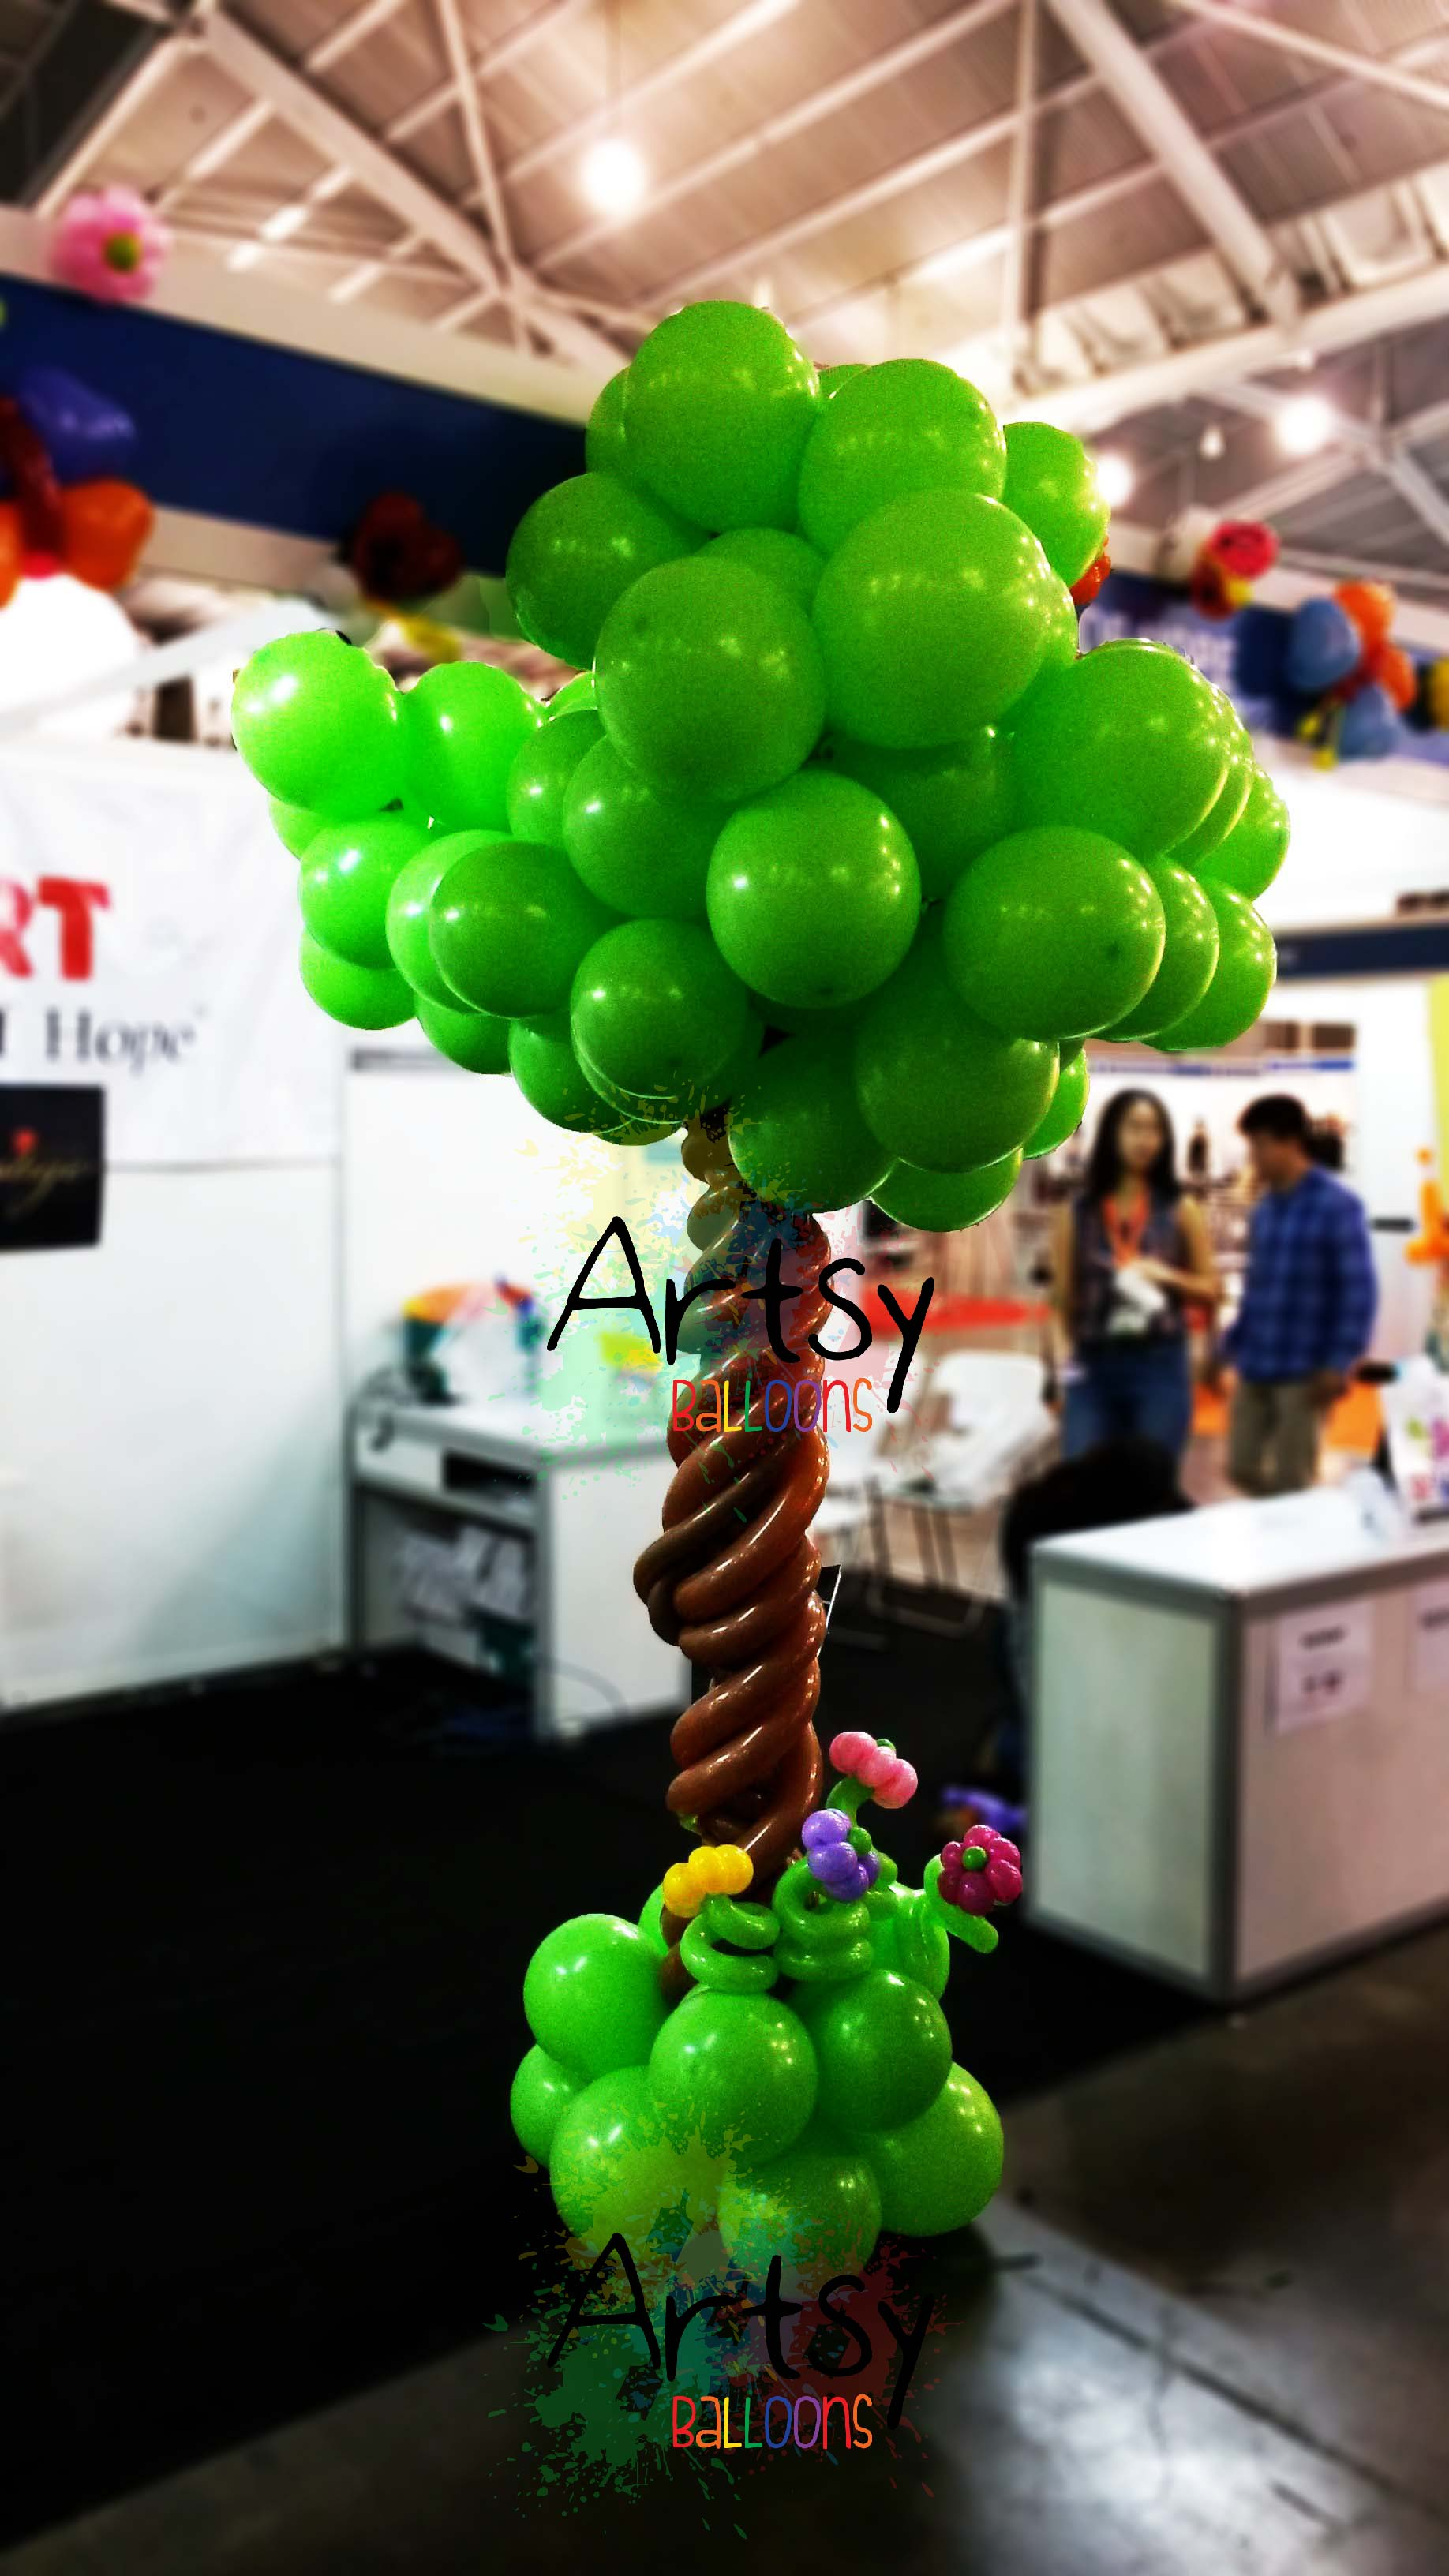 , A simple balloon decoration for a Expo booth!, Singapore Balloon Decoration Services - Balloon Workshop and Balloon Sculpting